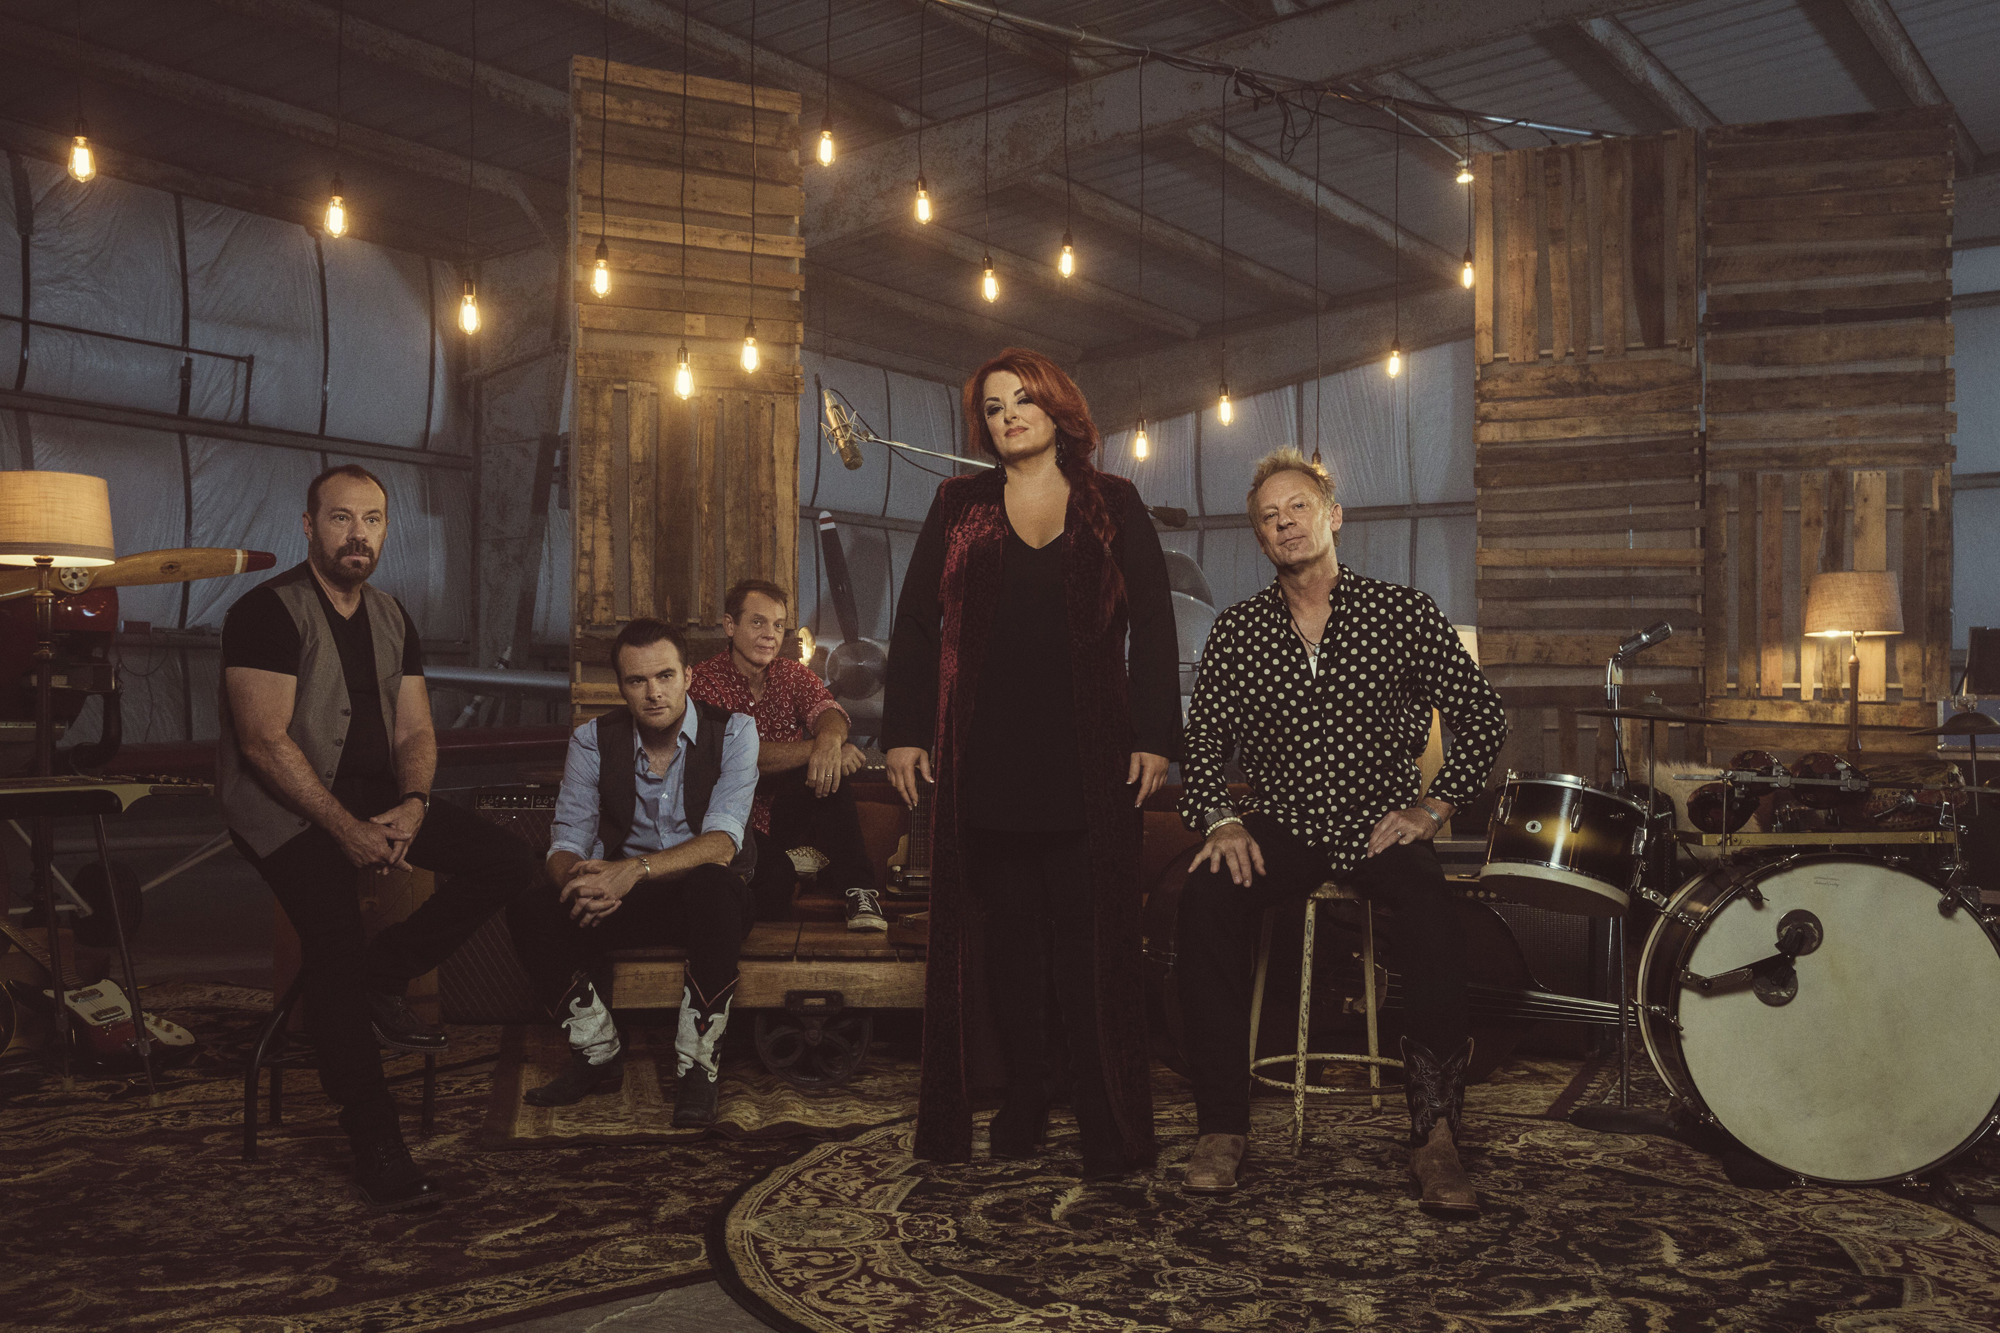 Restoration and Revival: An Interview with Wynonna Judd